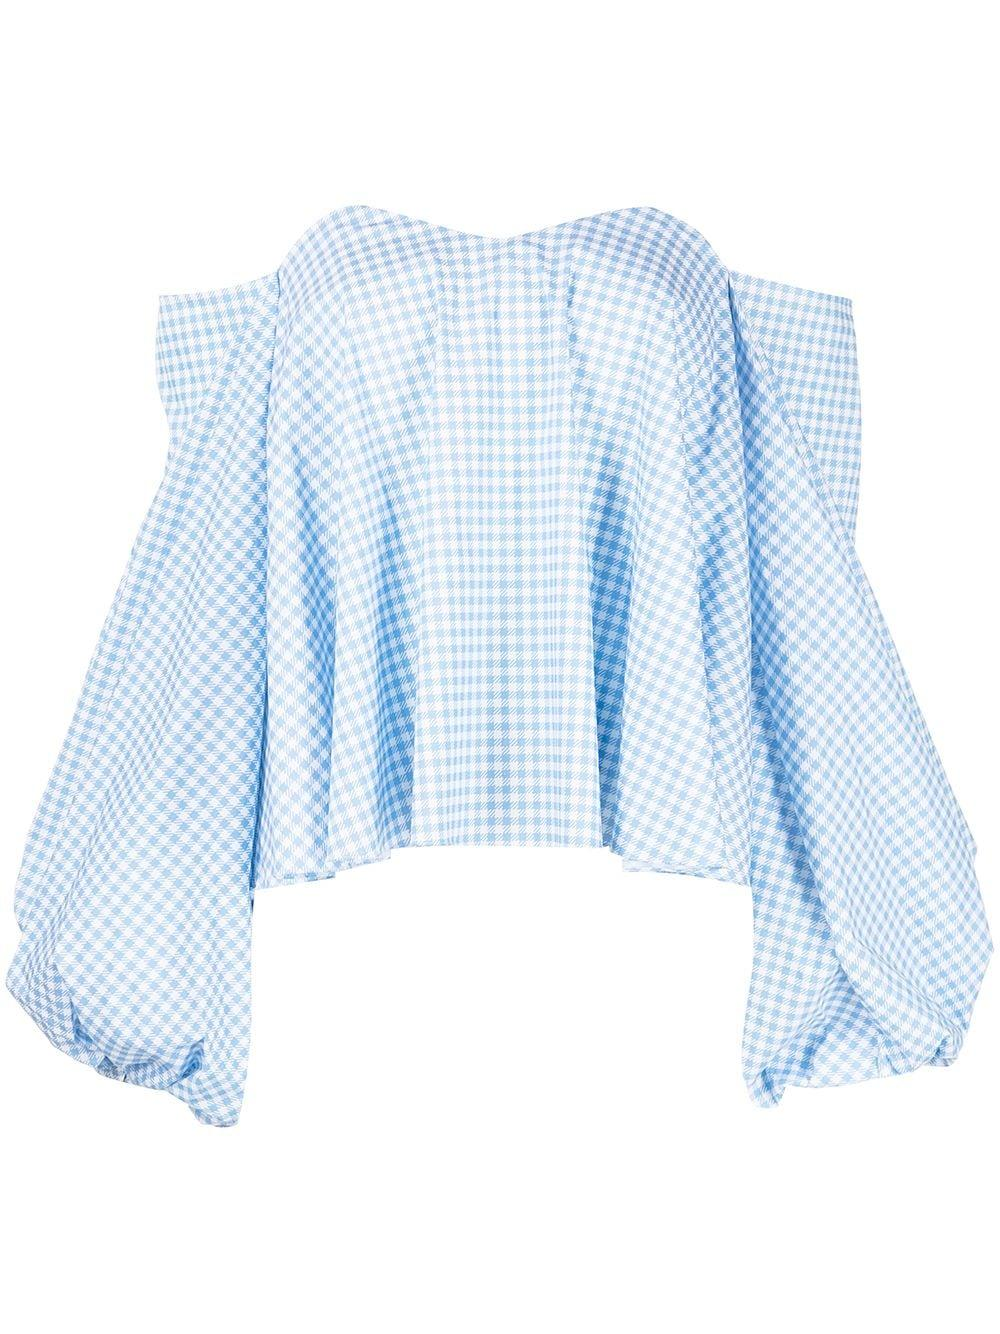 Everly Gingham Top